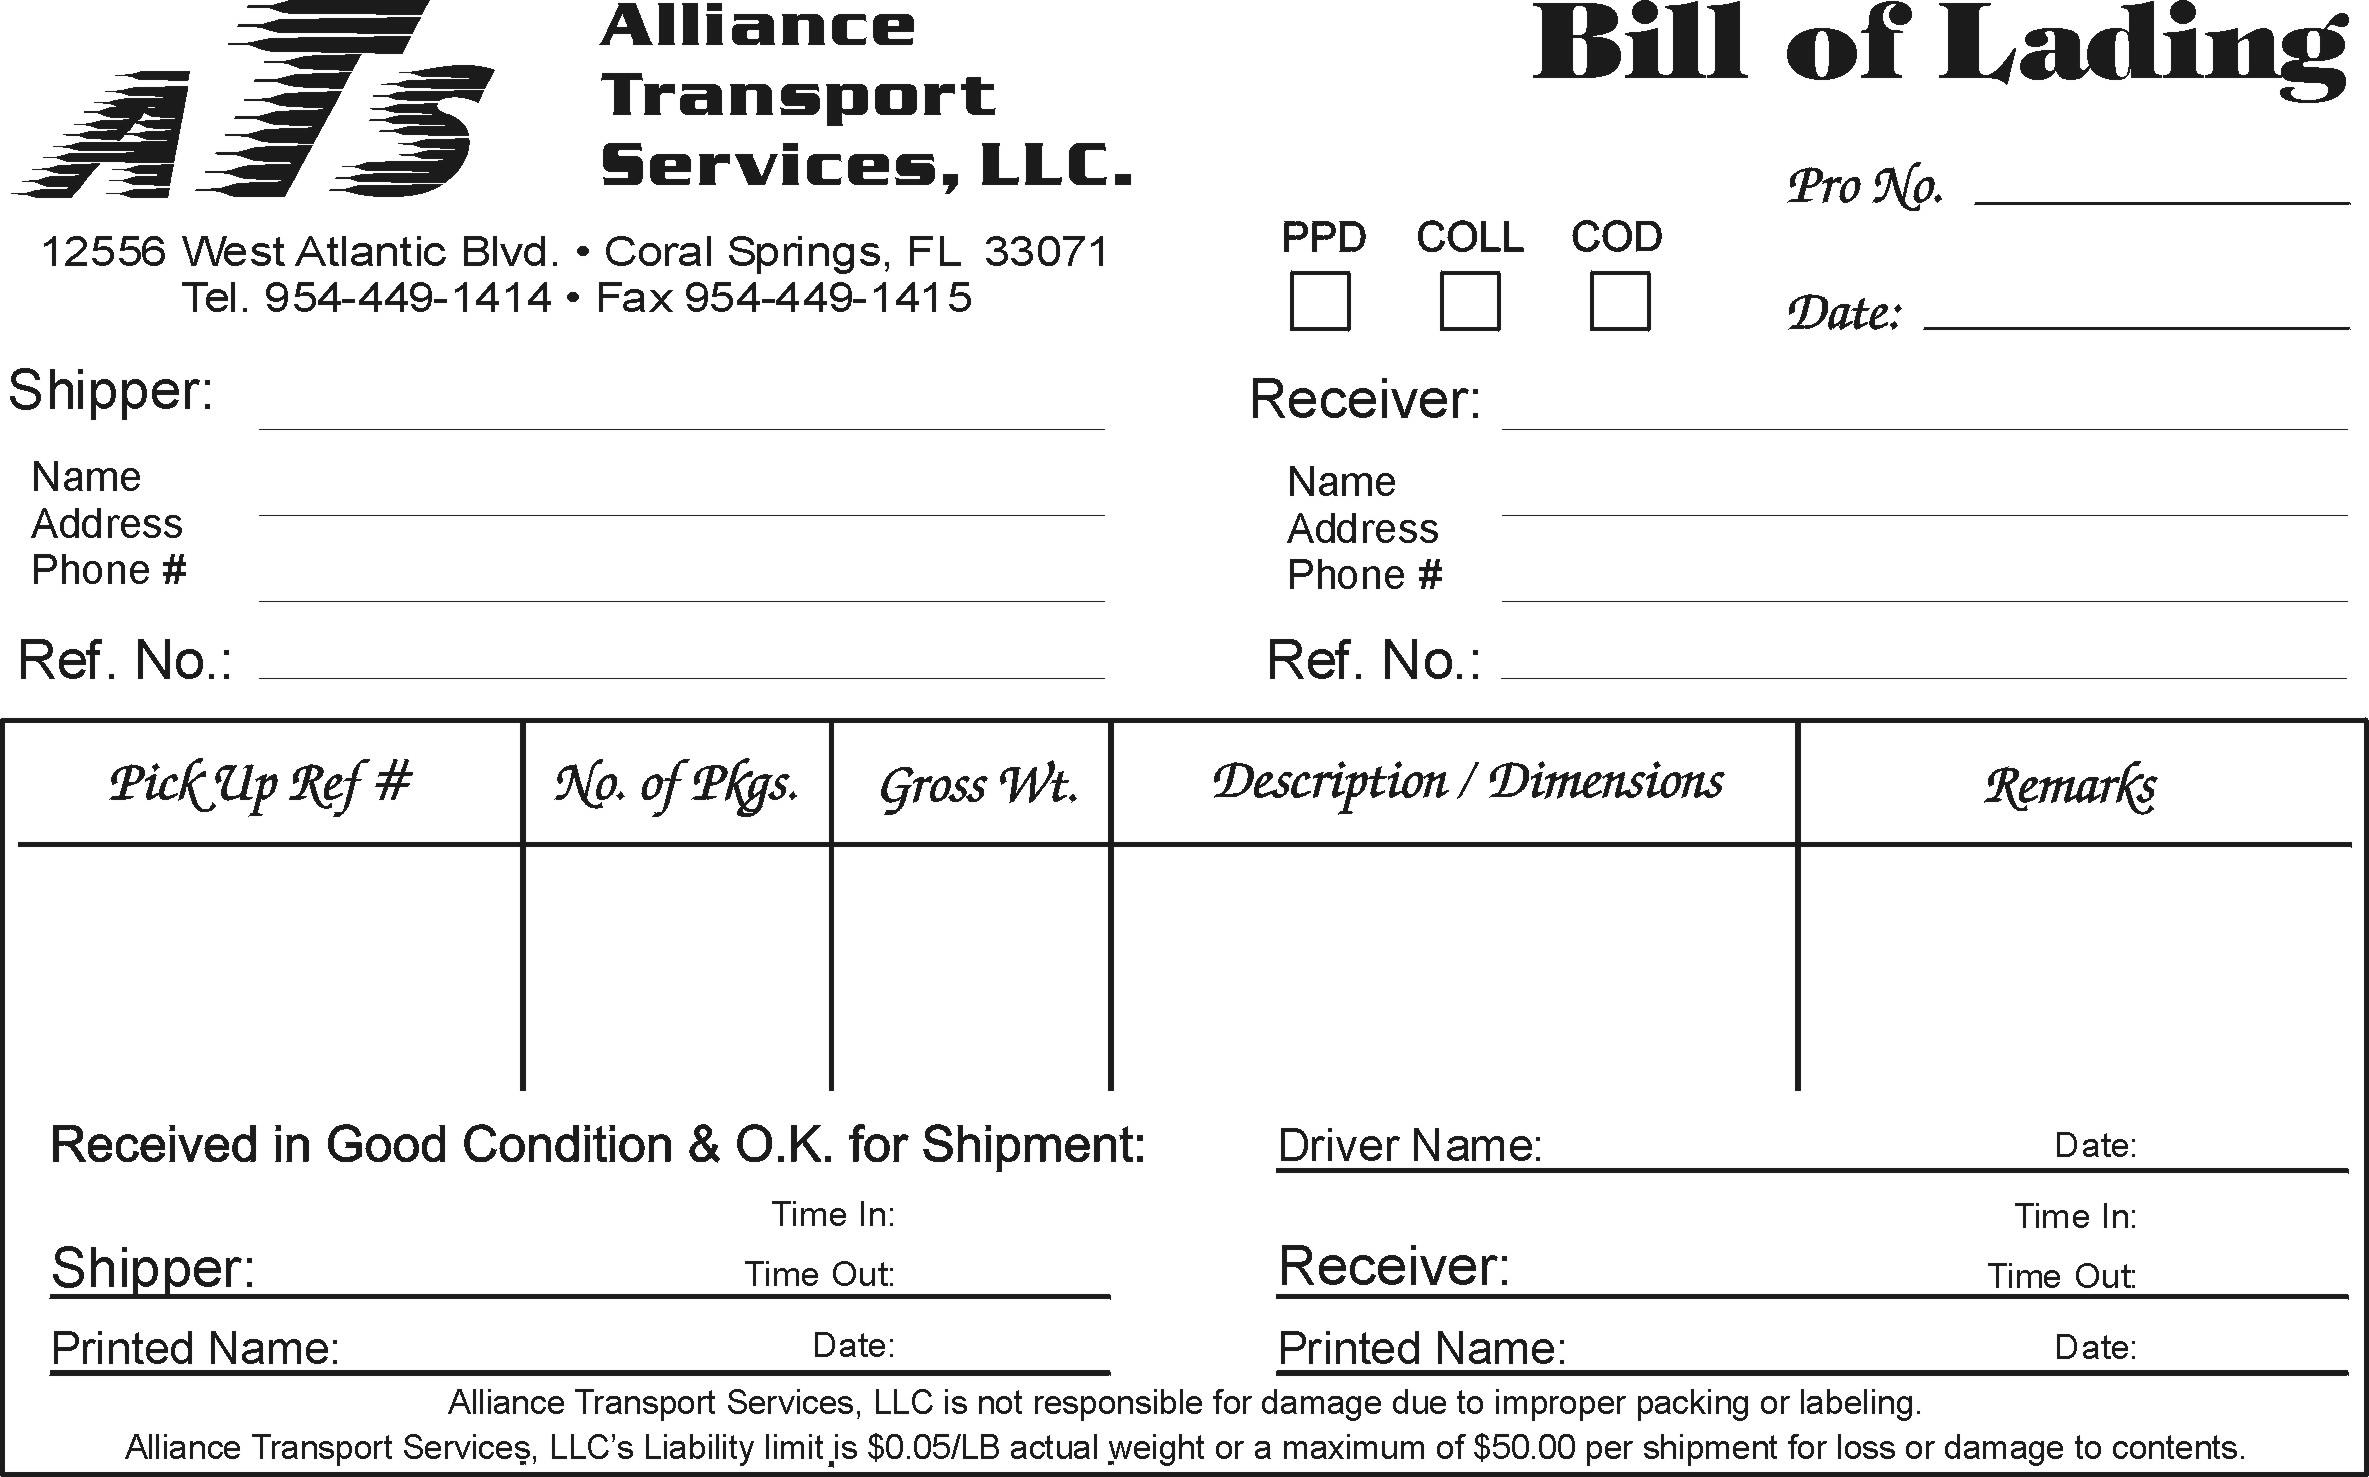 a bill of lading